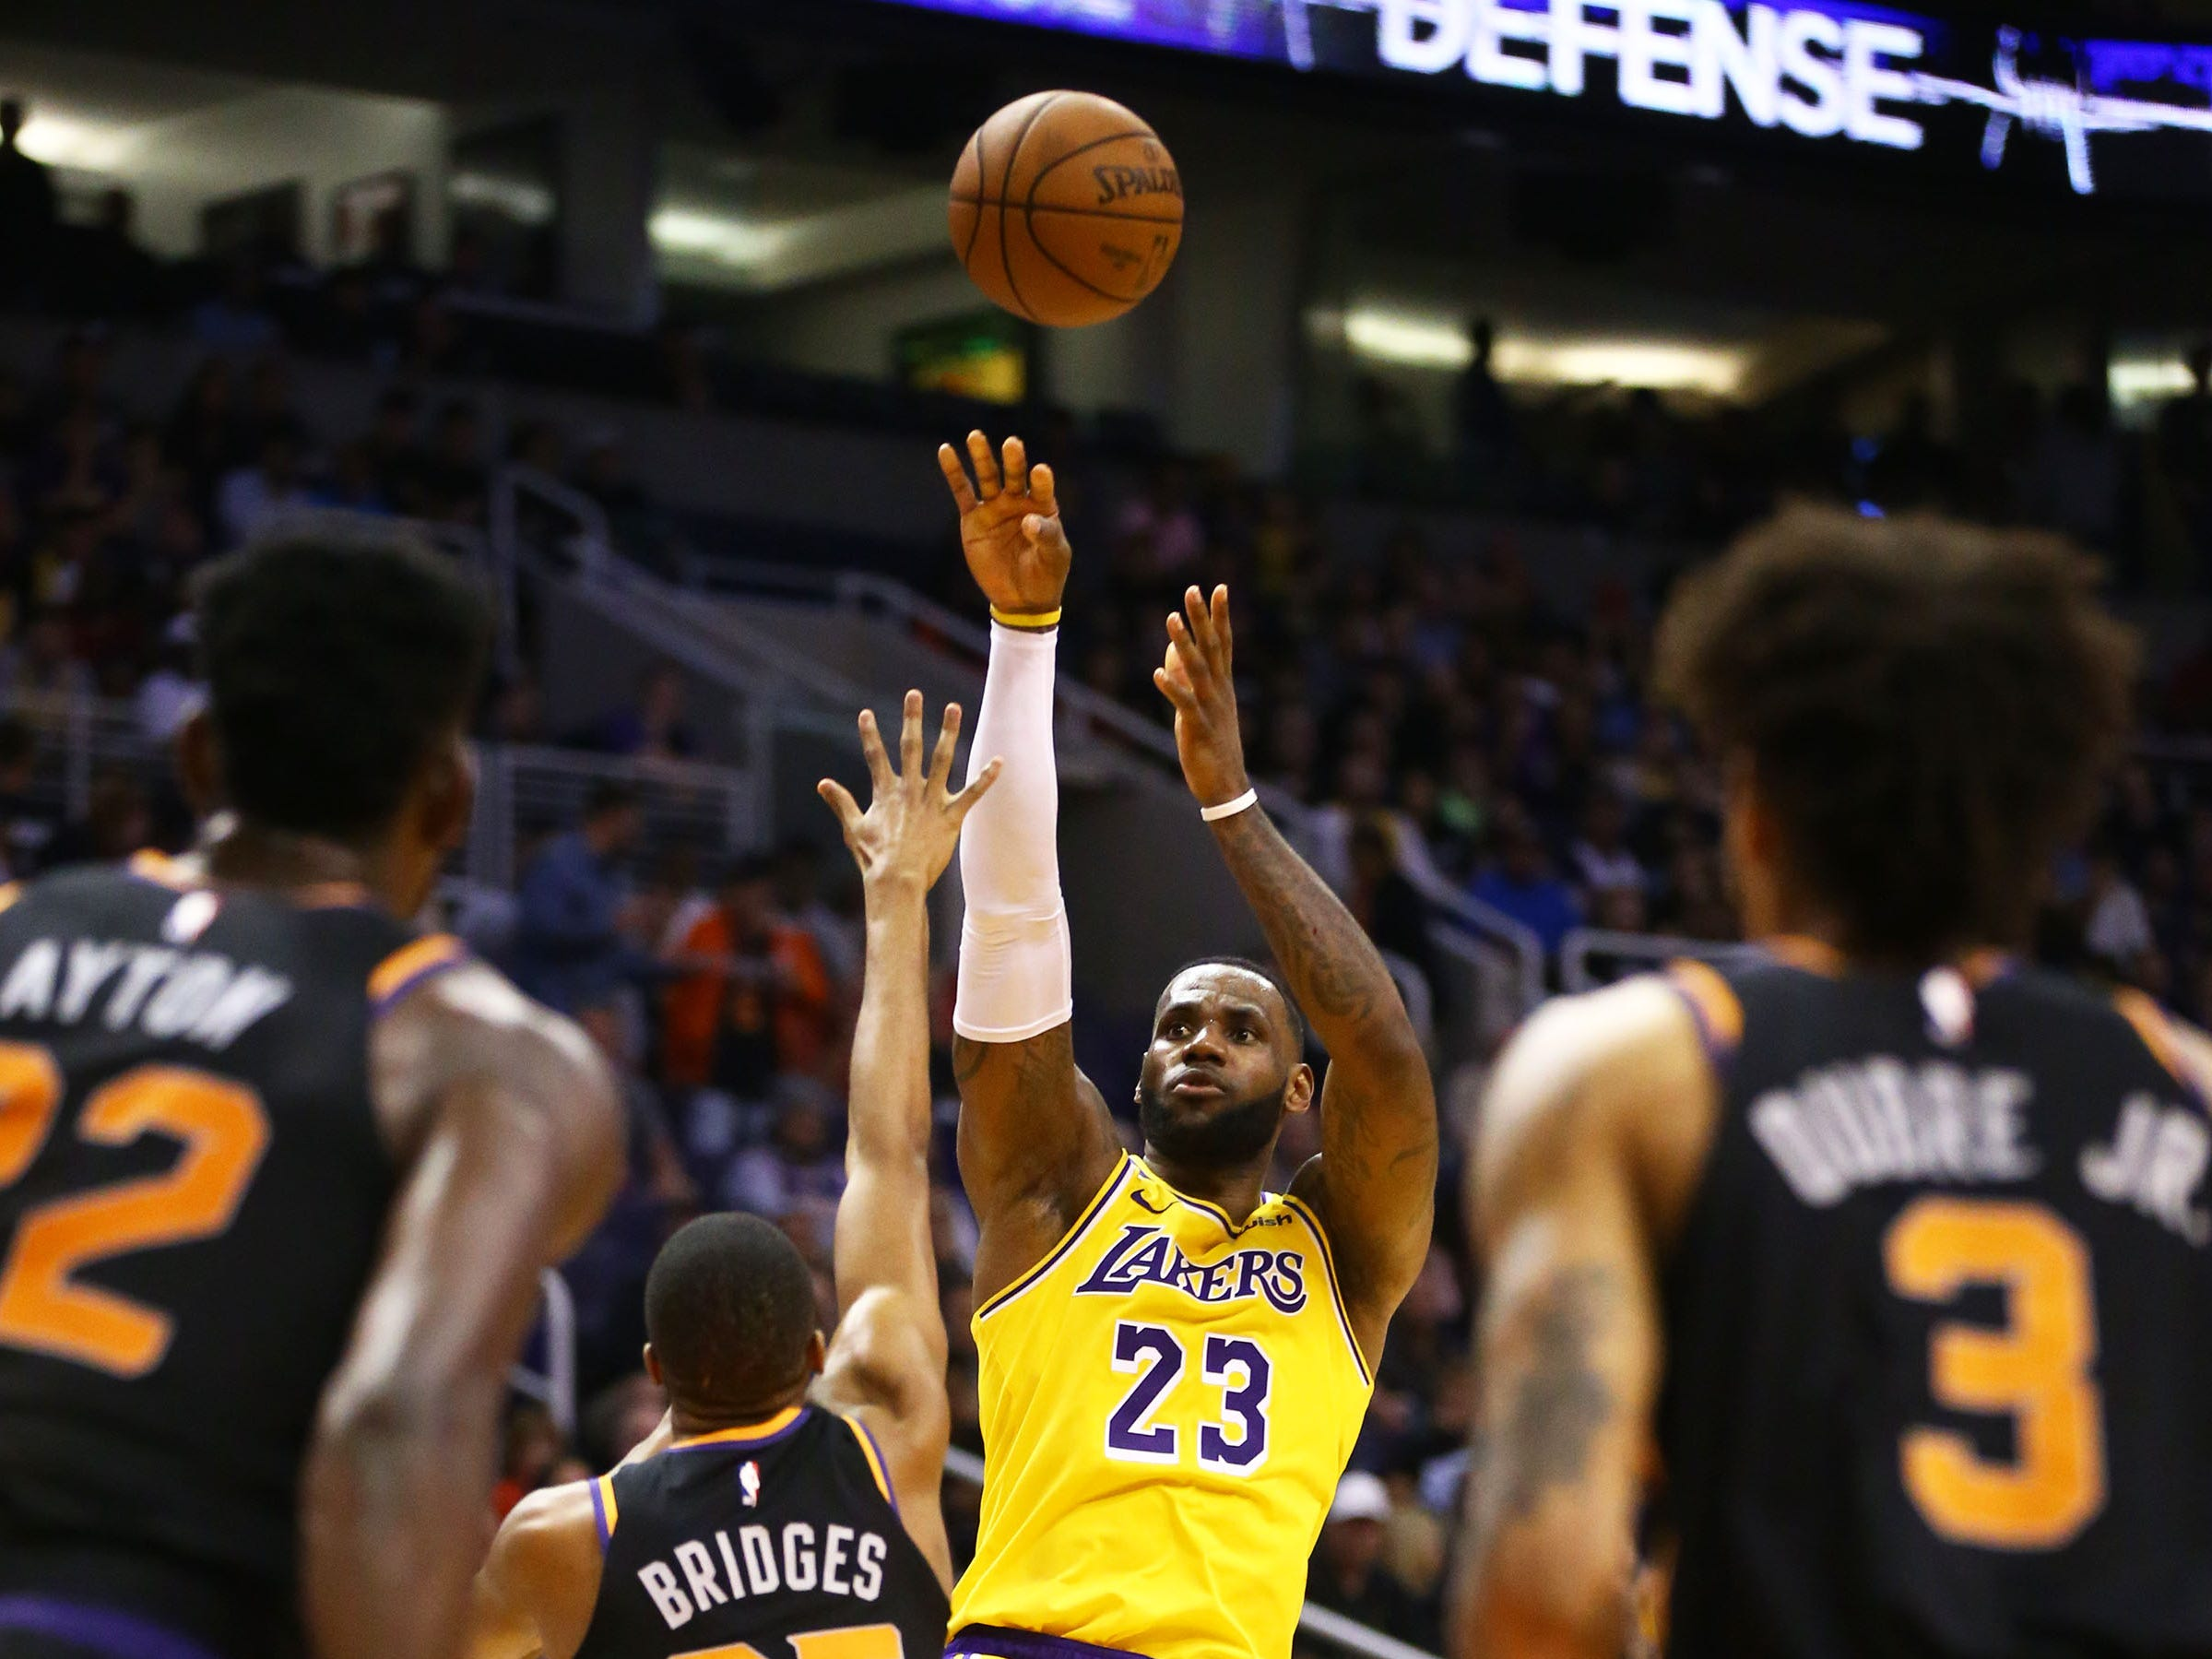 Los Angeles Lakers forward LeBron James (23) shoots a jumper over Phoenix Suns forward Mikal Bridges (25) in the second half on Mar. 2, 2019, at Talking Stick Resort Arena in Phoenix, Ariz.